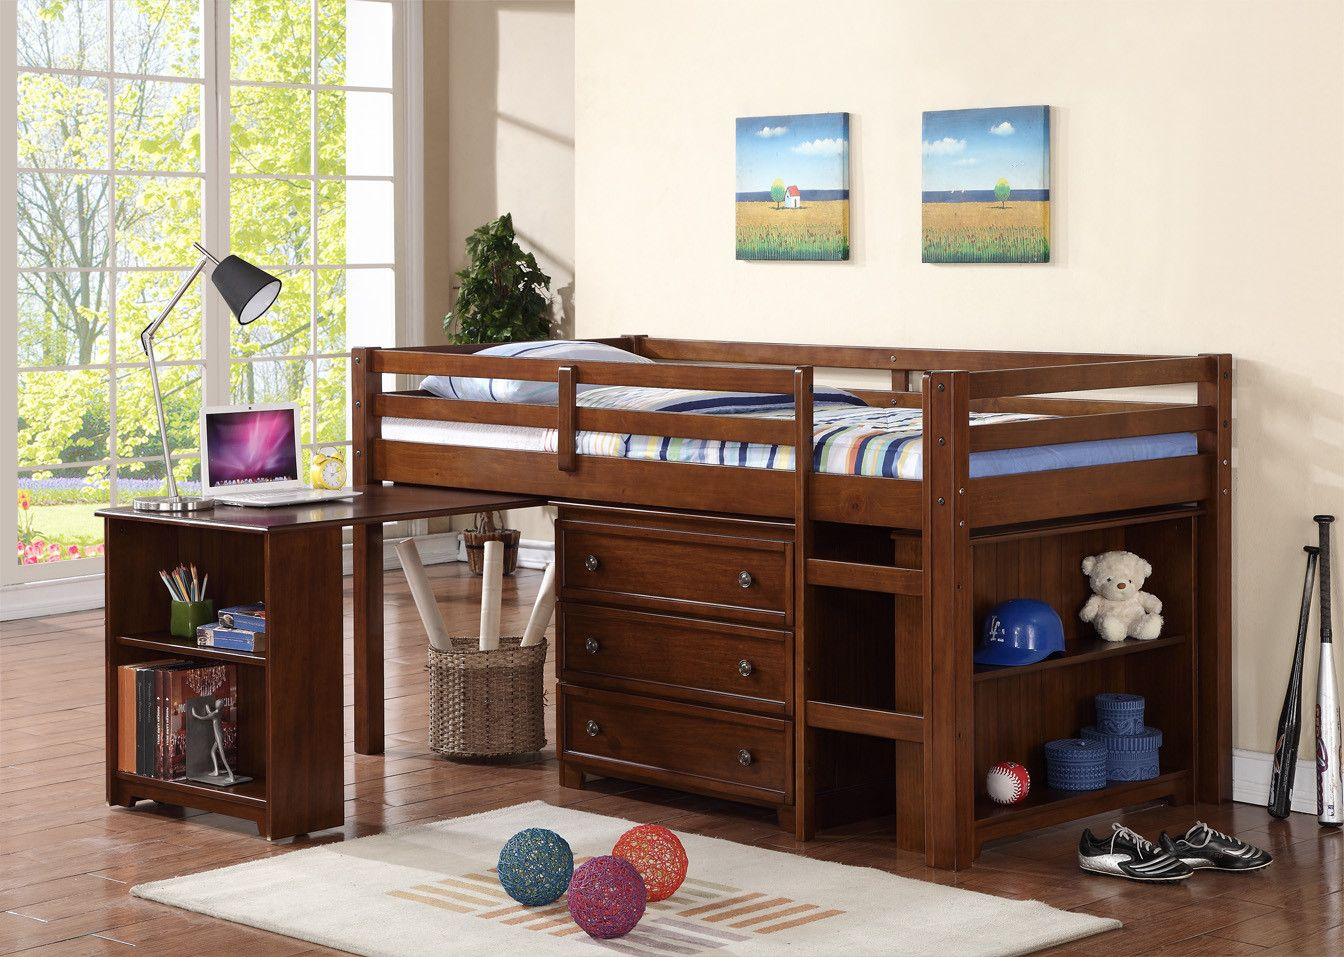 Dcor Design Donco Kids Twin Low Loft Bed With Roll Out Desk Chest